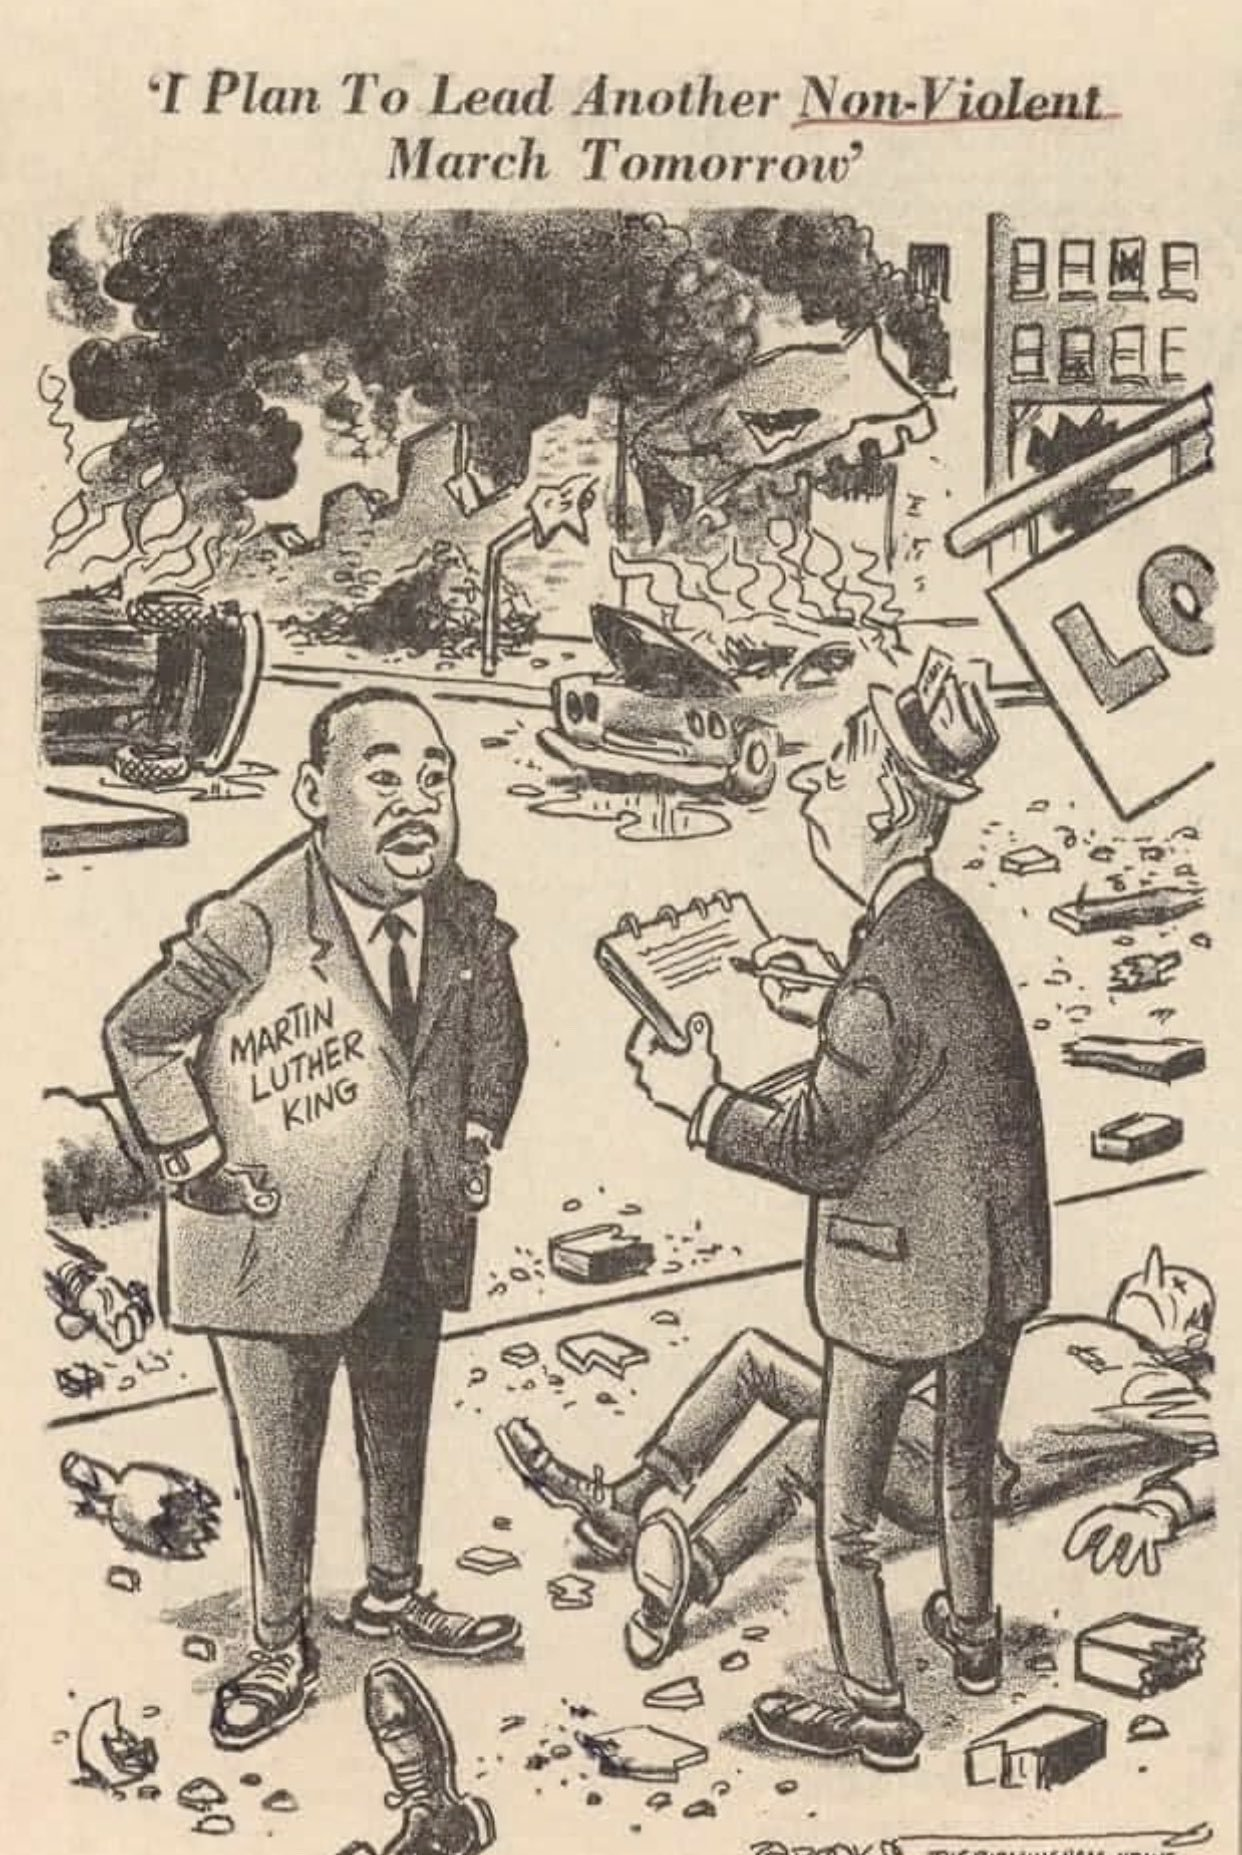 """A cartoon depicting Martin Luther King Jr. telling a reporter """"I plan to lead another non-violent march tomorrow"""", with an unconscious man and city destruction behind them."""